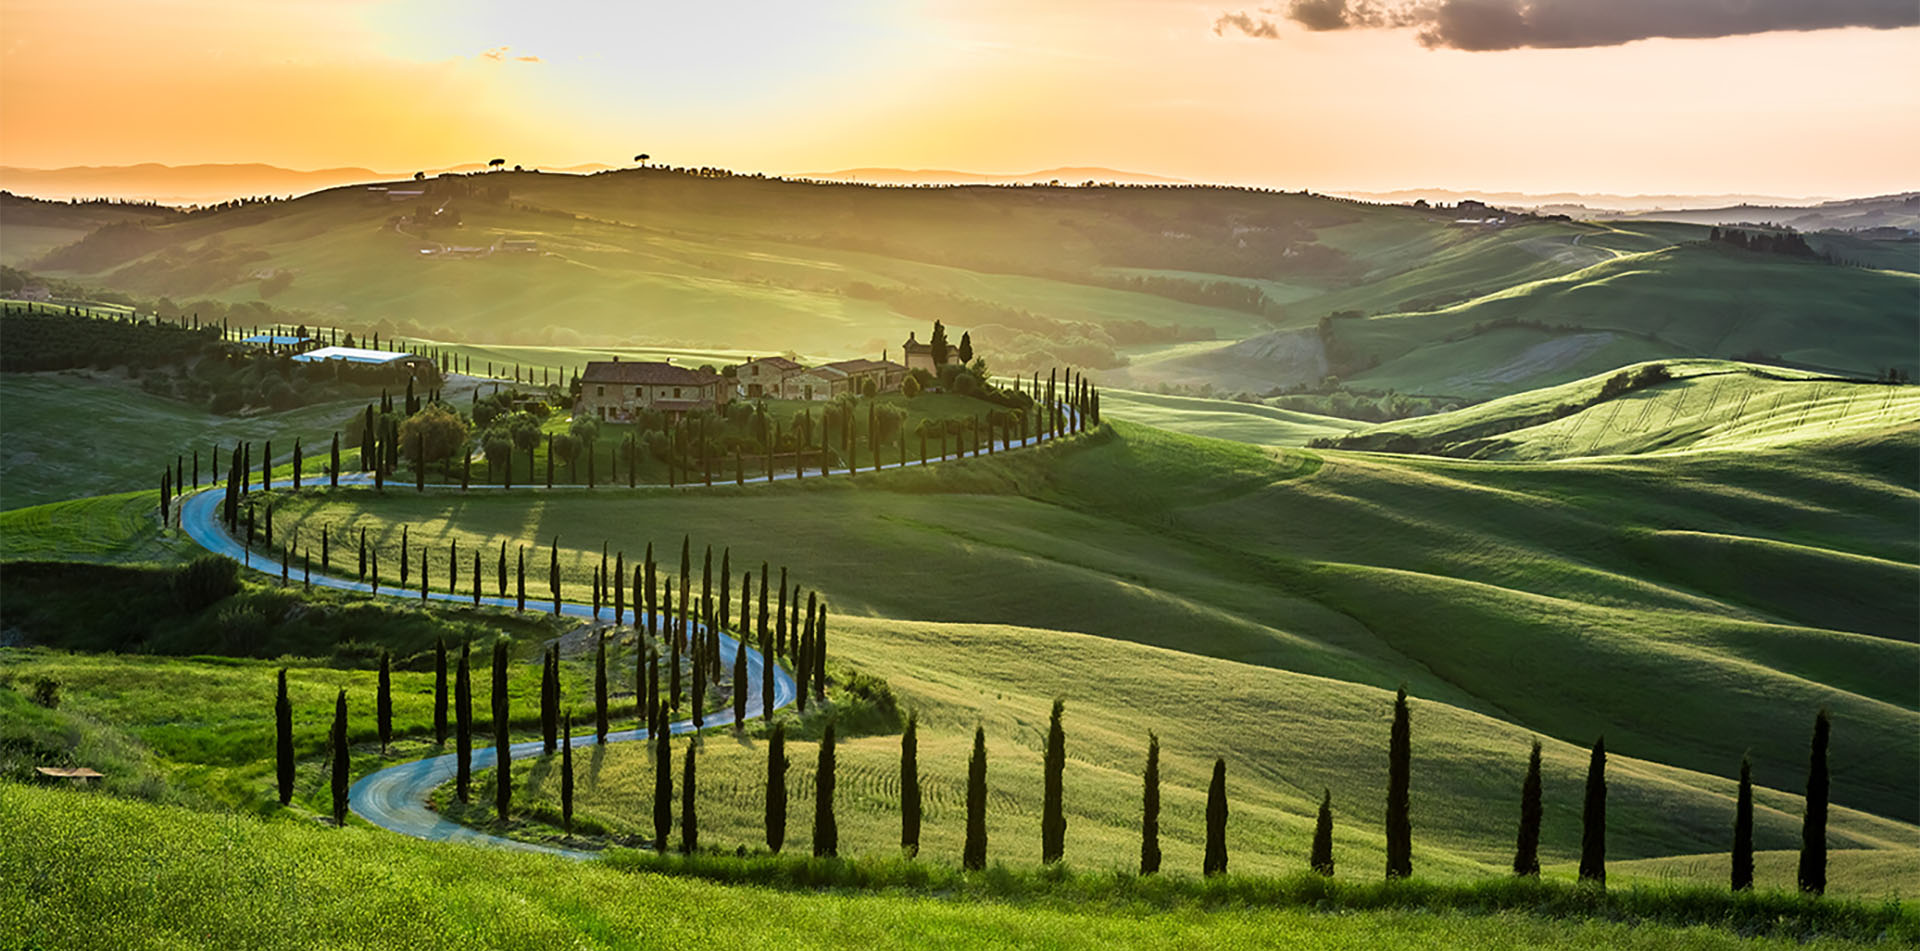 Countryside of Tuscany at Sunset, Italy